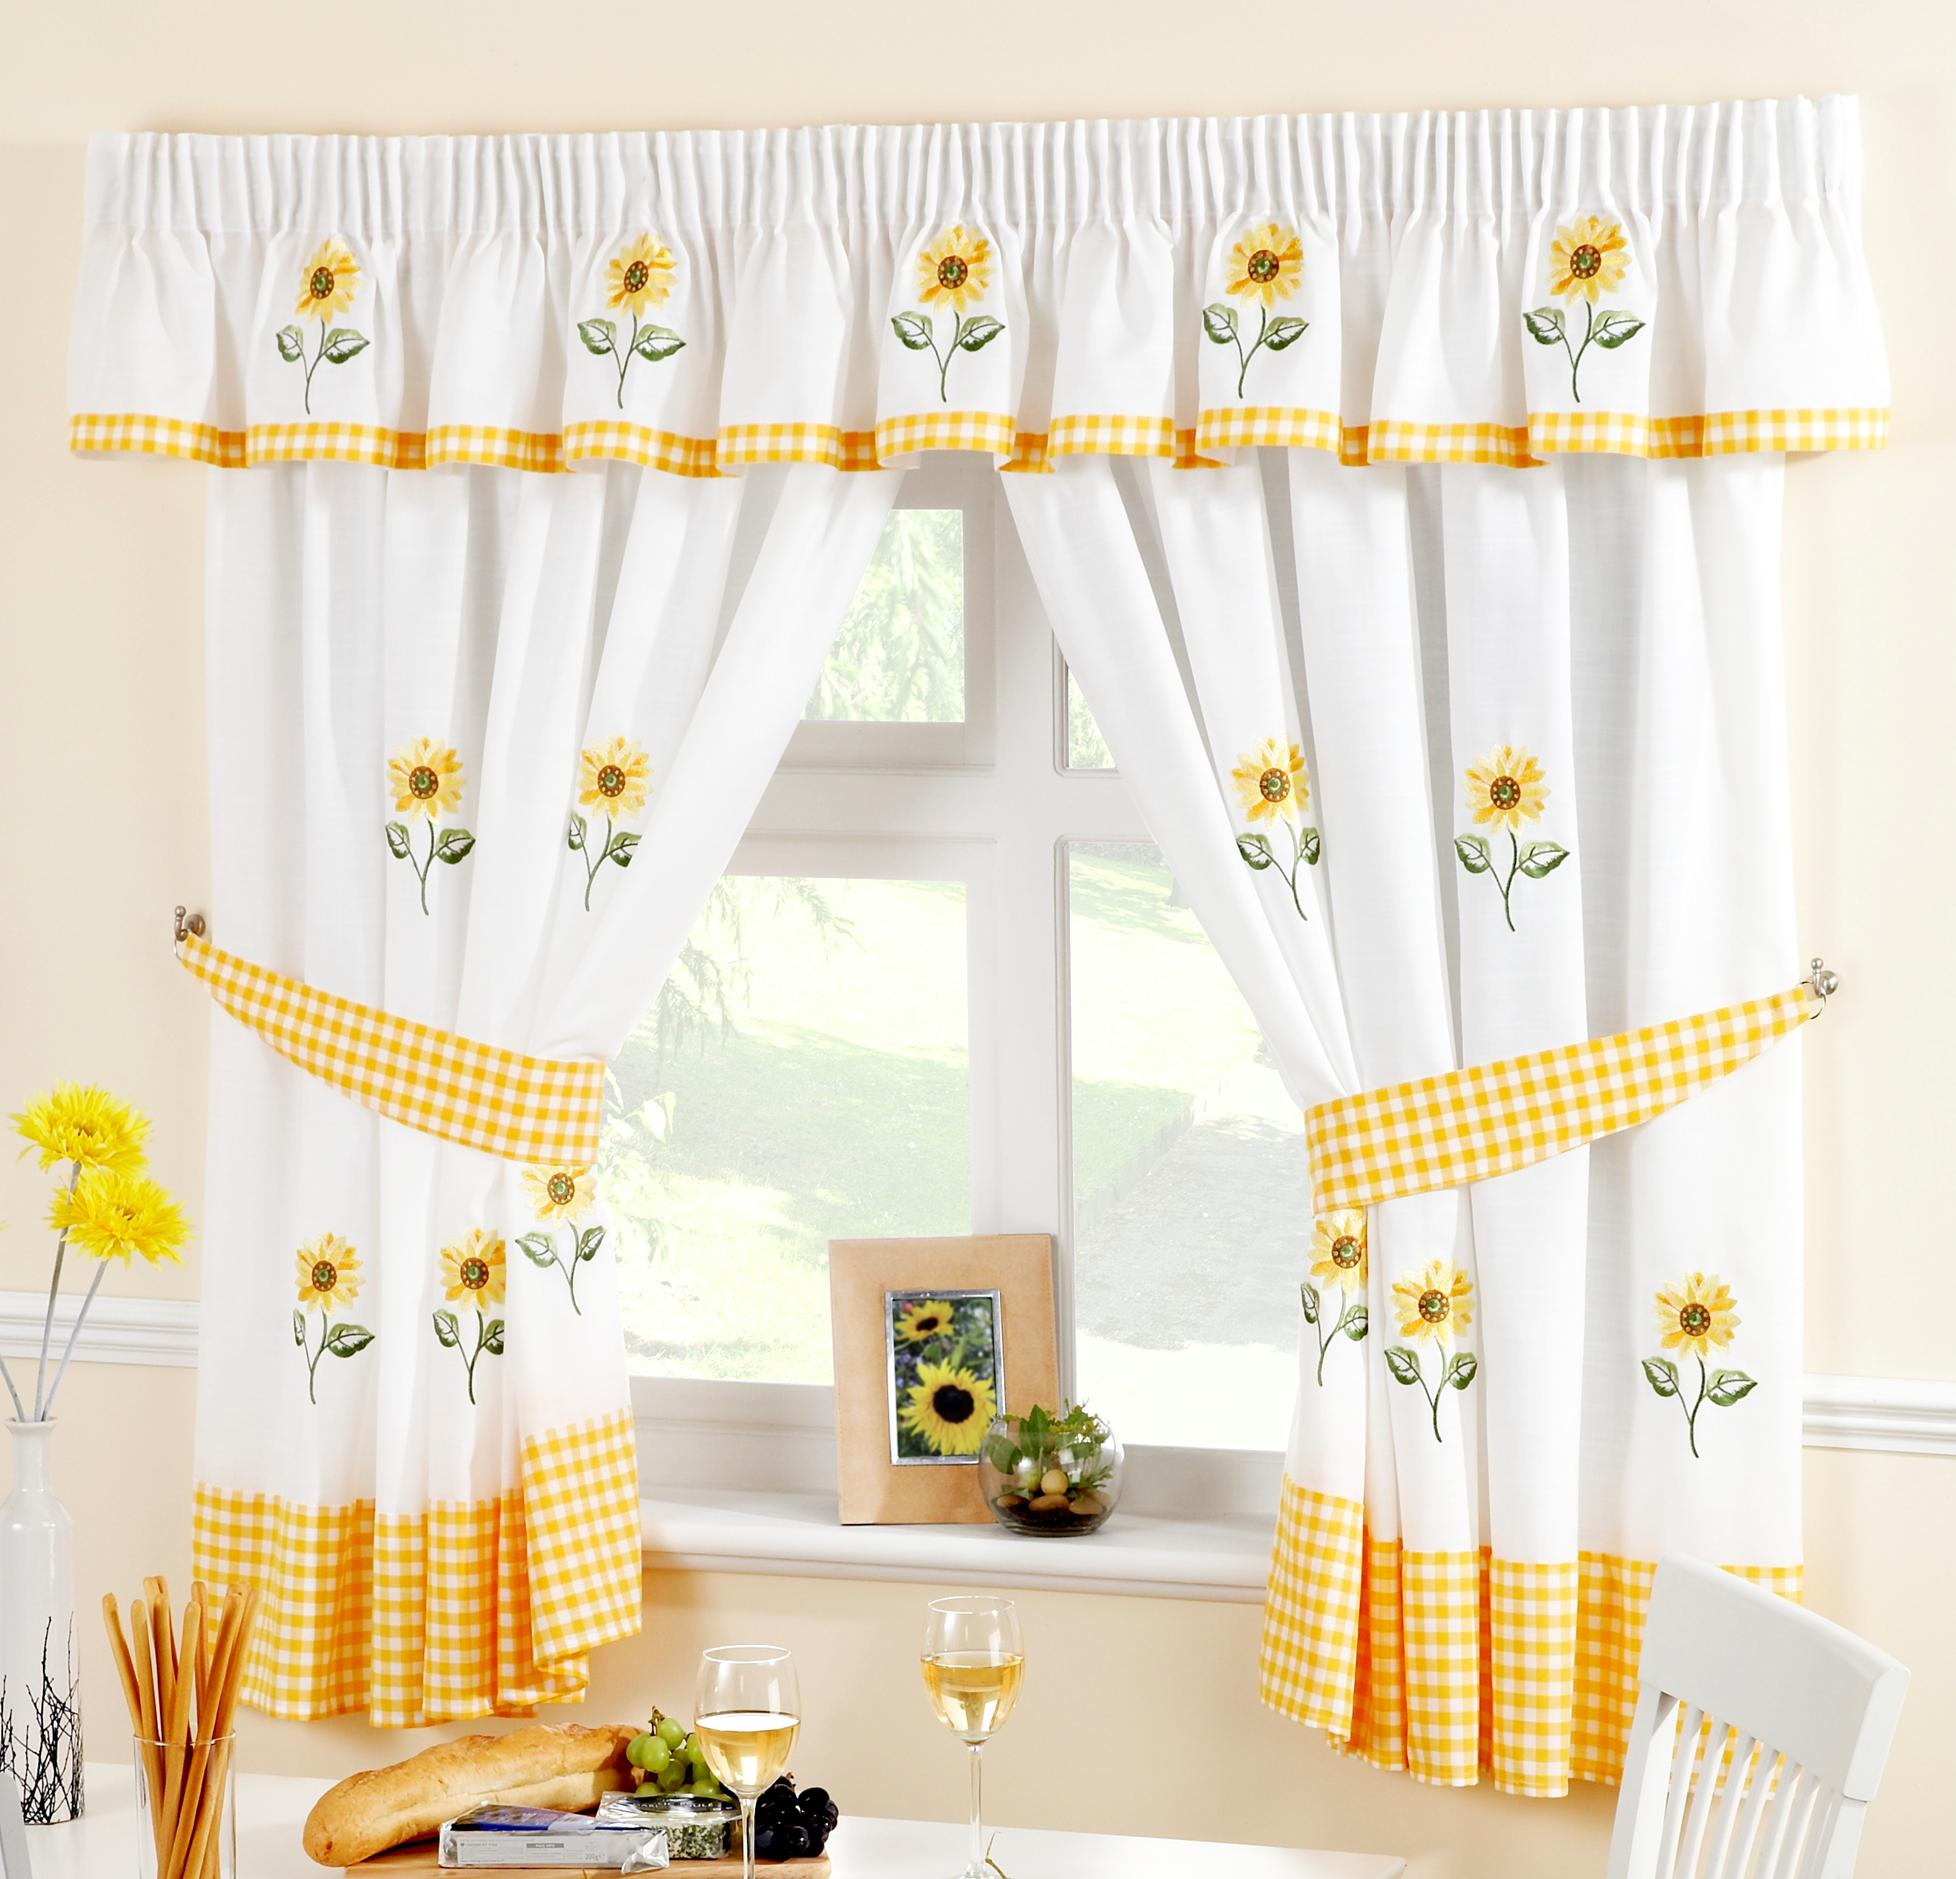 Sunflower Kitchen Curtains – Curtains At Home